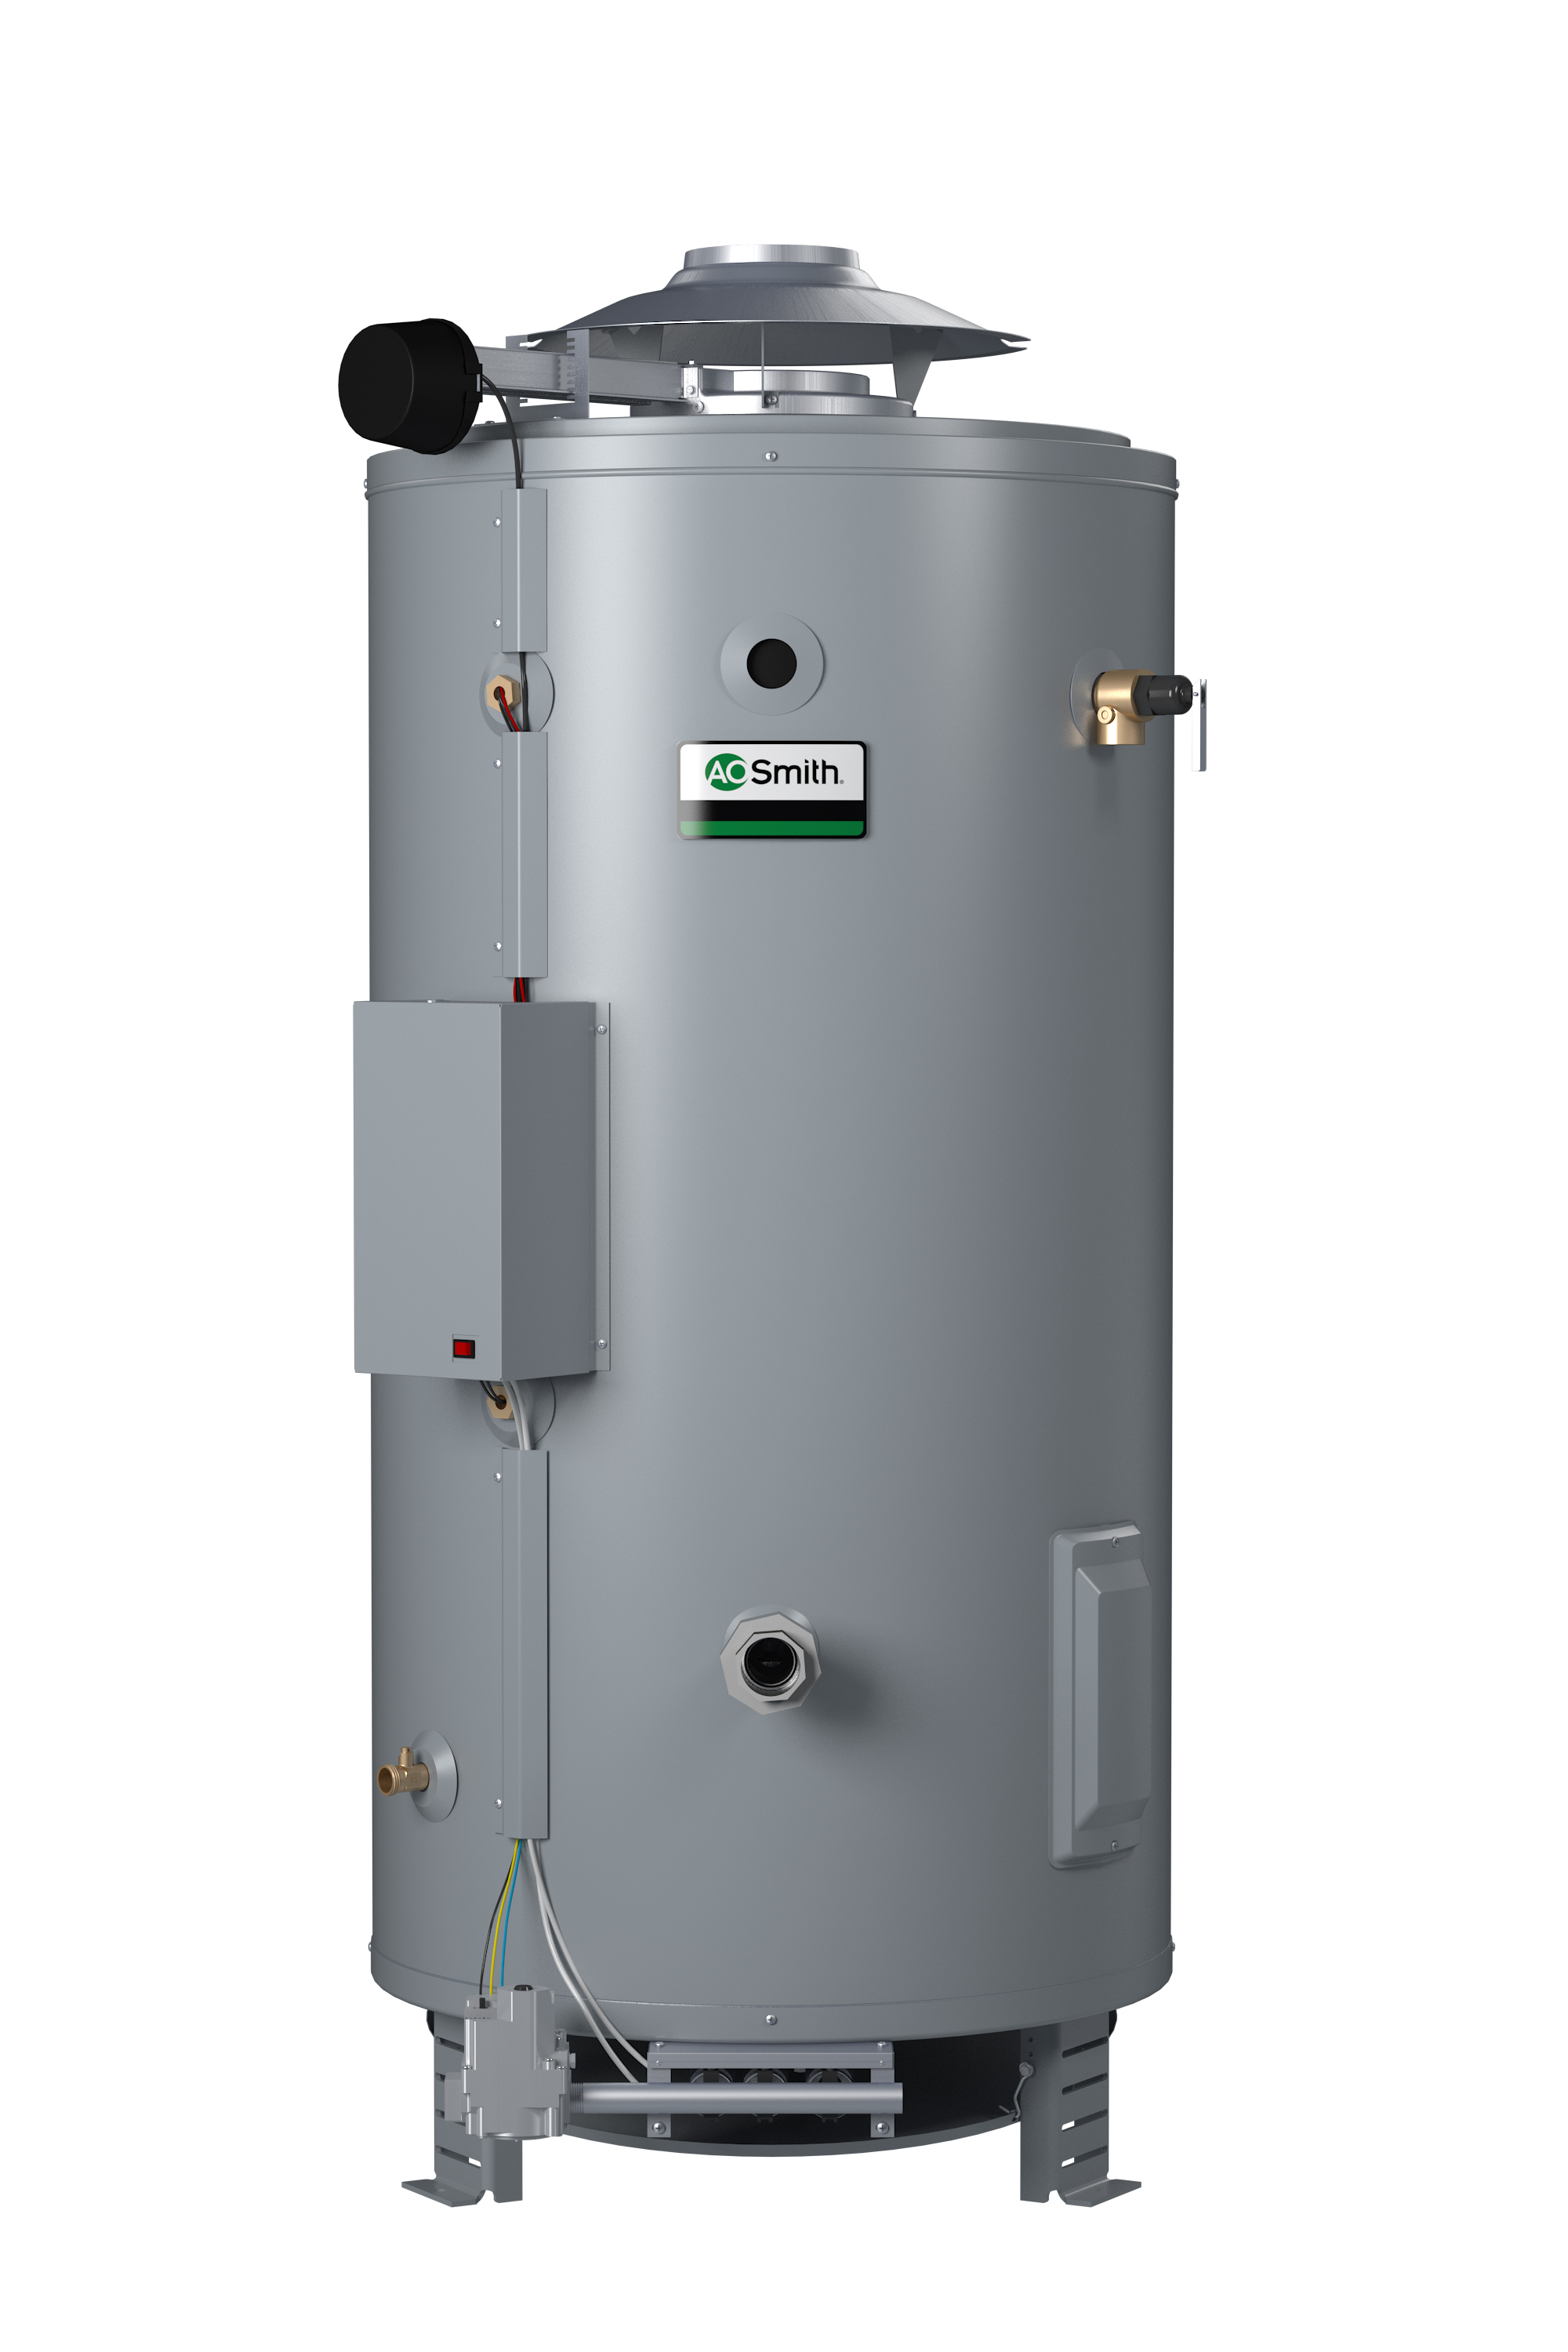 Master Fit 174 Standard Draft Water Heaters Commercial By A